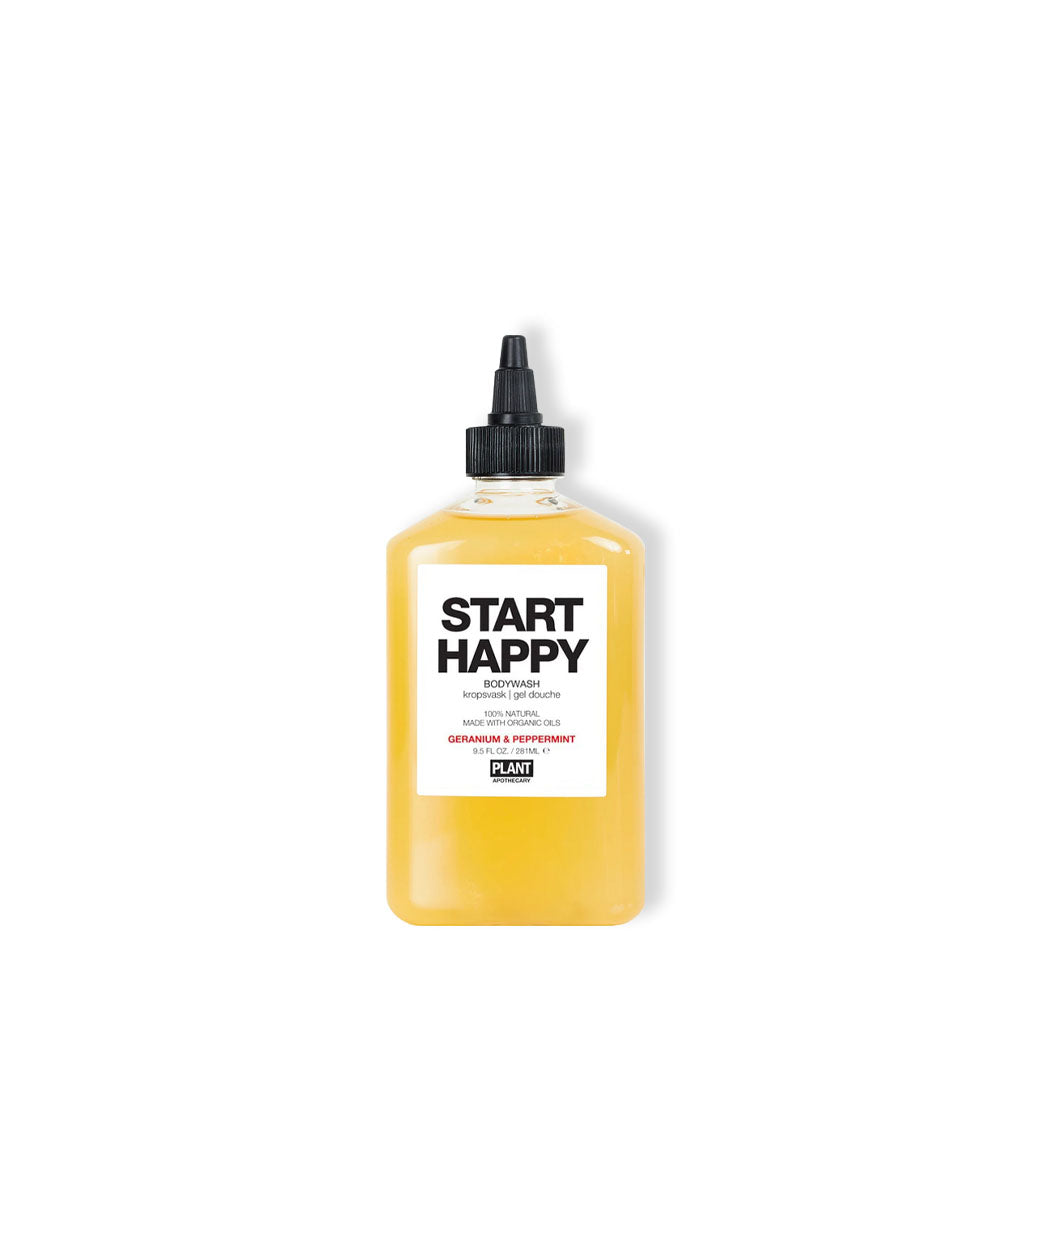 Start Happy Body Wash